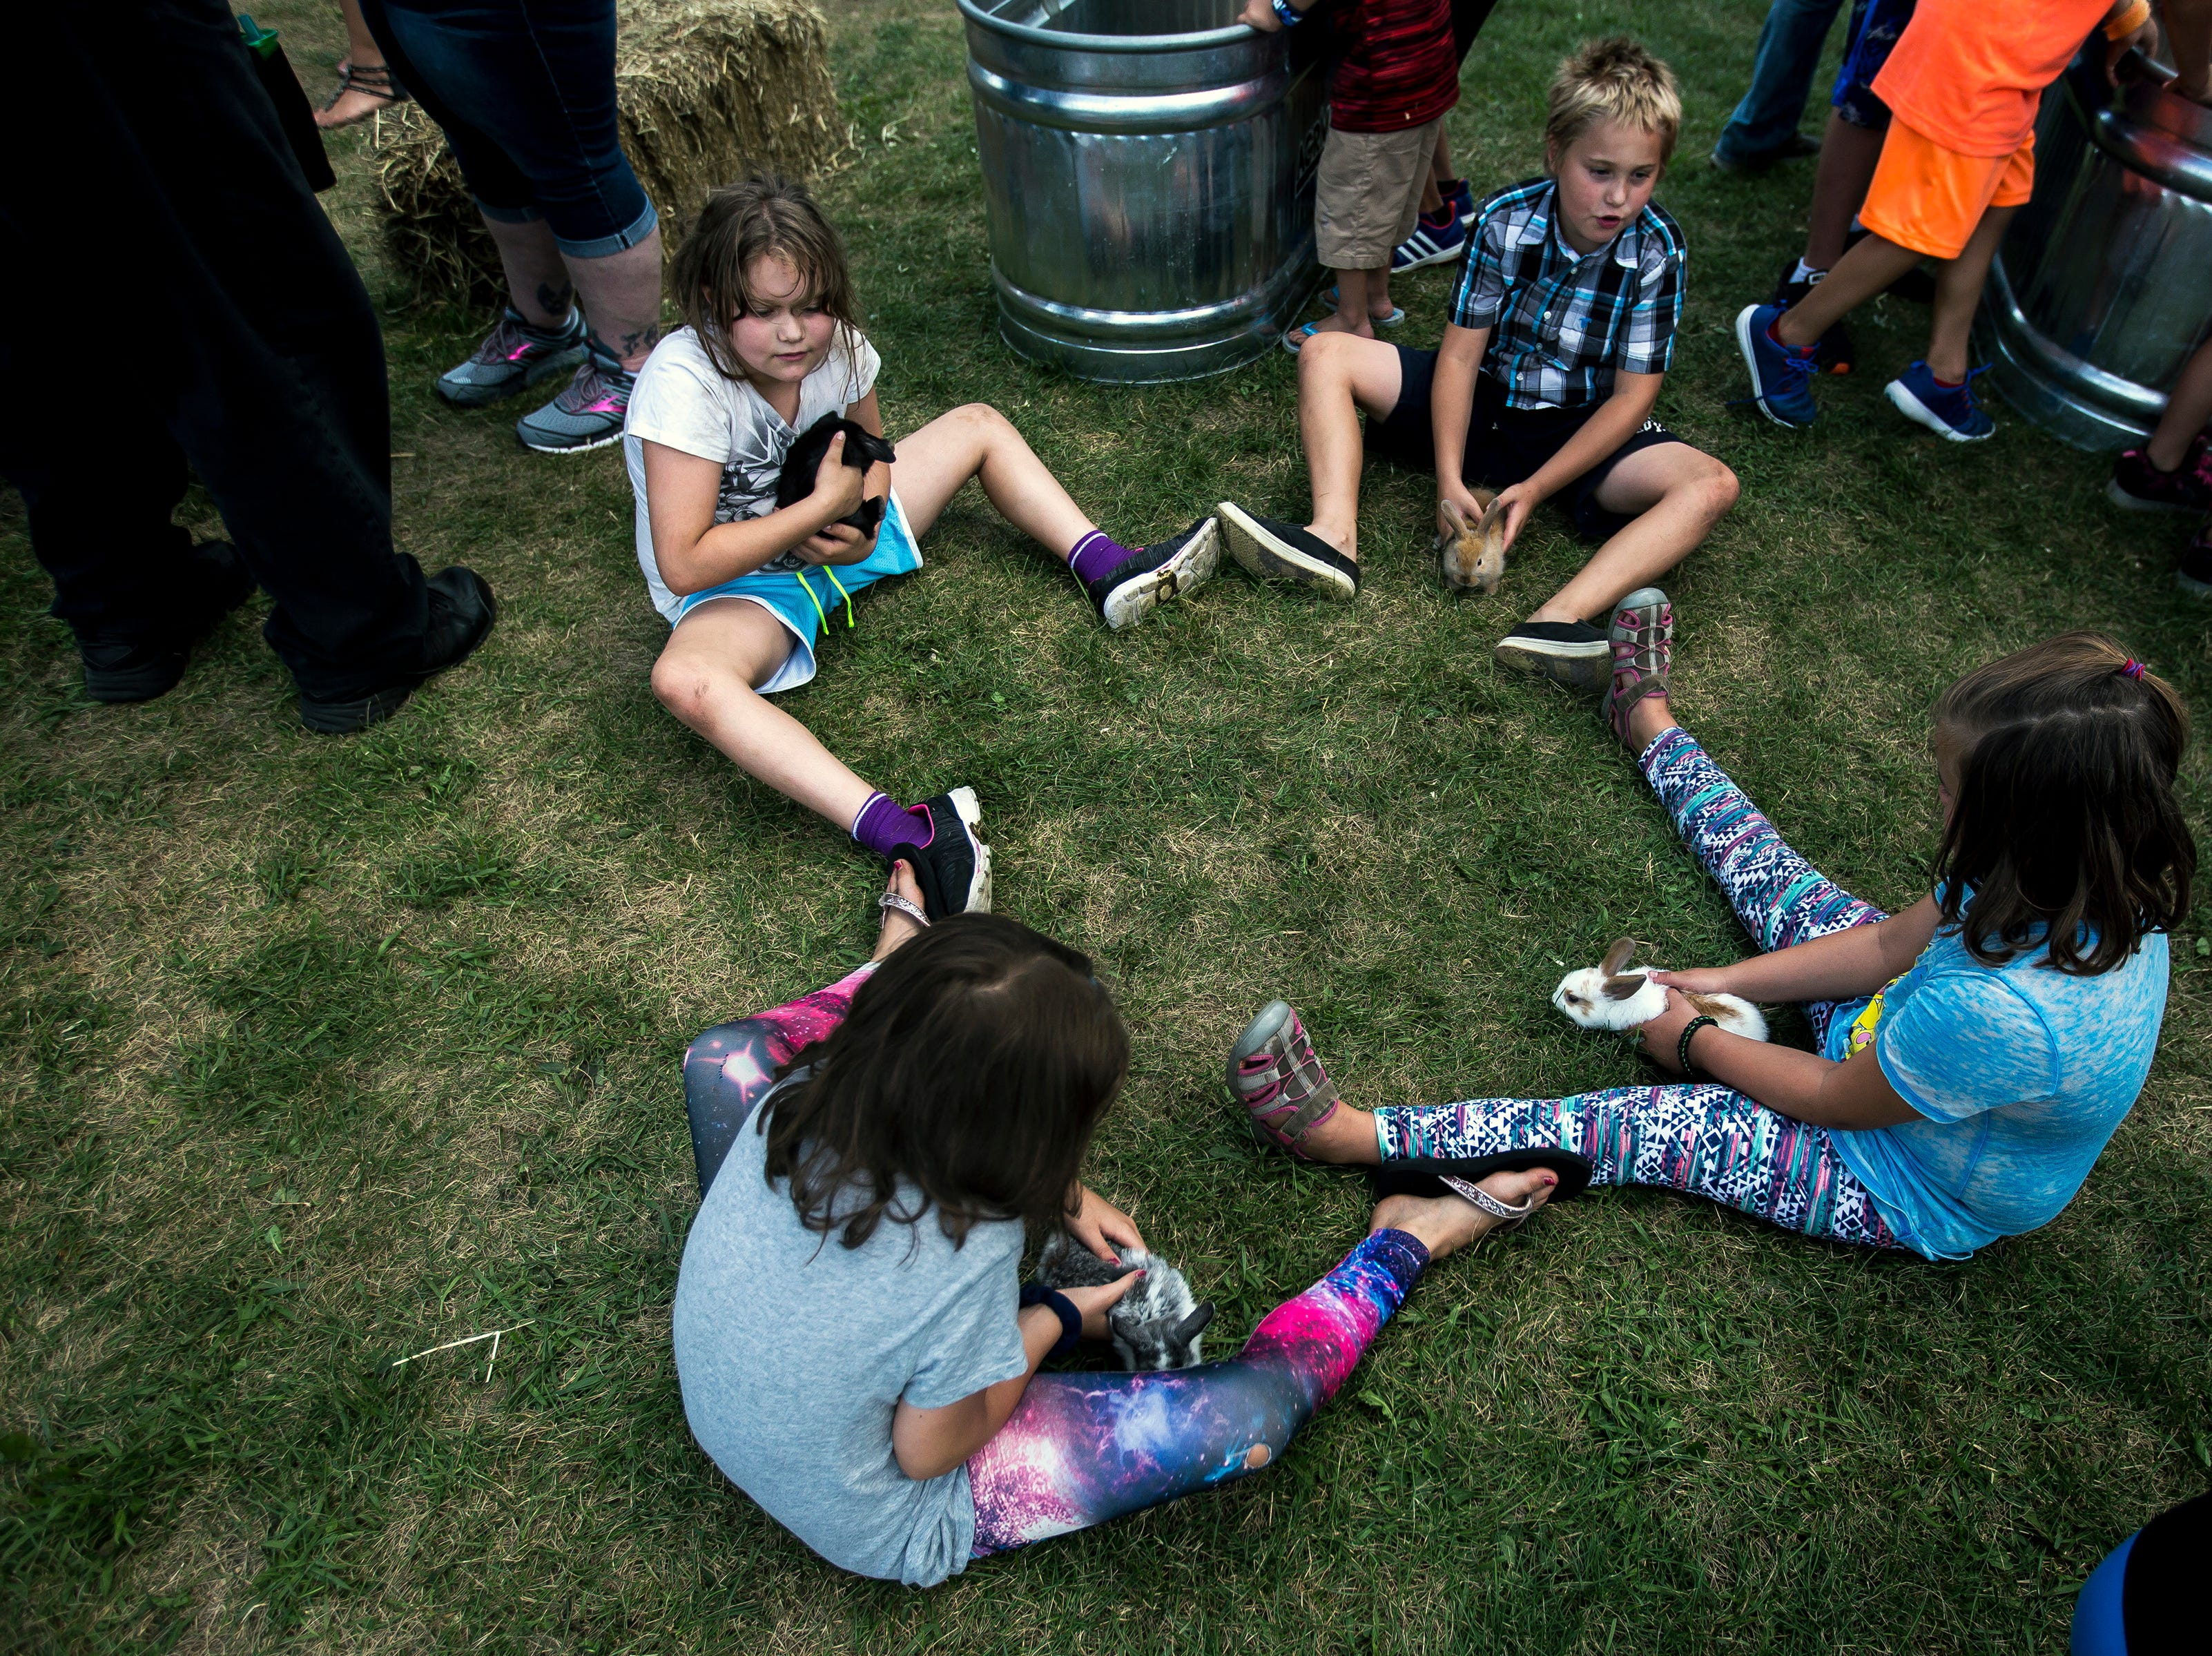 Kids pet and hold rabbits at a petting zoo during Celebrate Plover at Lake Pacawa Park in Plover, Wis., July 28, 2018.